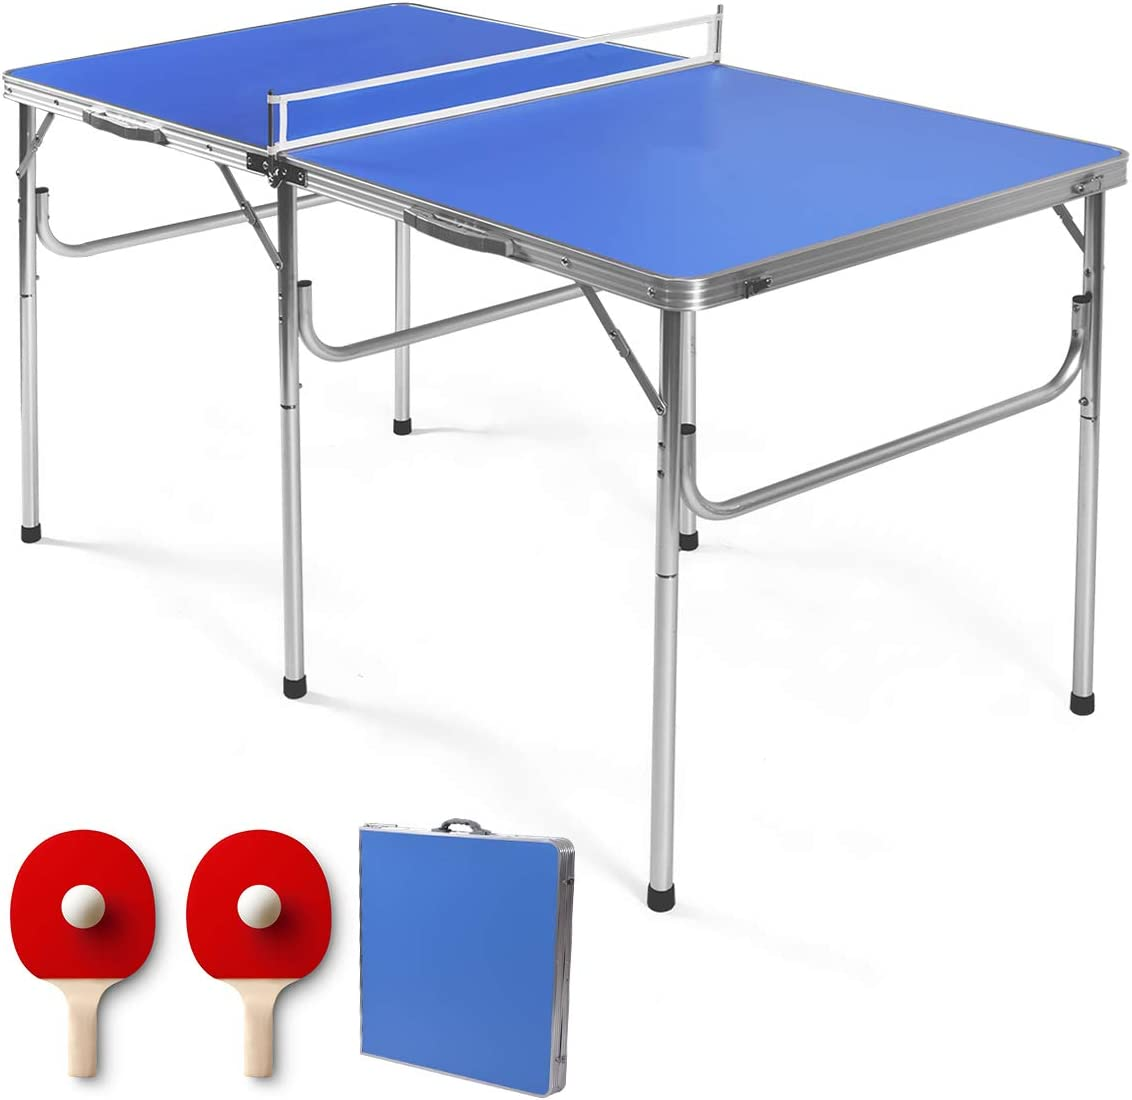 Portable Table Tennis Ping Pong Net Post Clamp Stand Foldable Rack Mesh S8H3